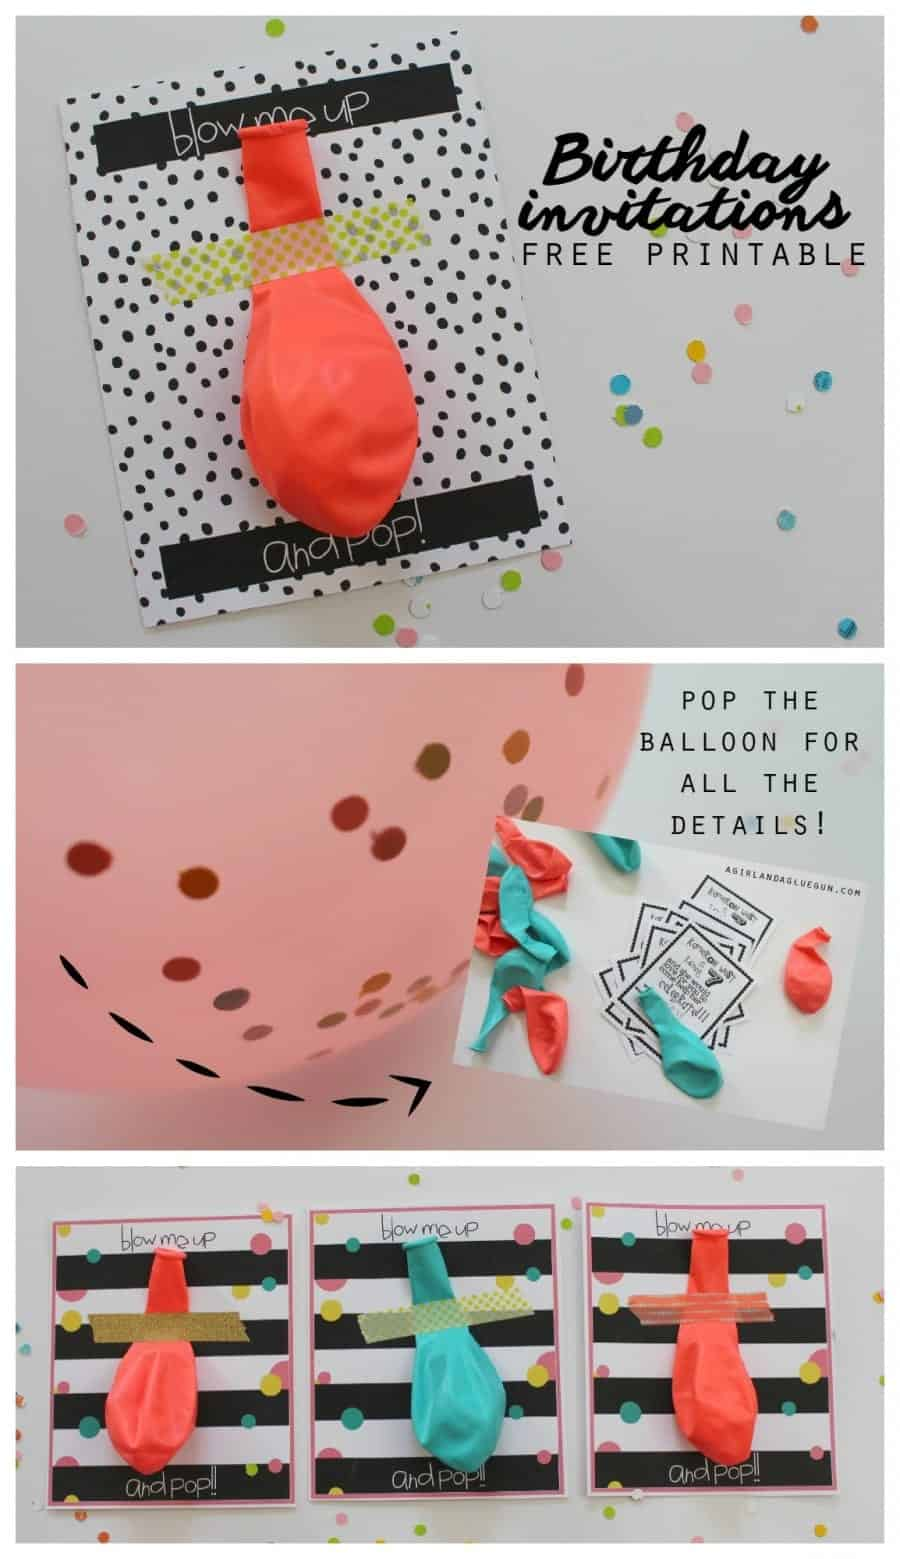 Balloon Birthday Party Invitations Image Inspiration of Cake and